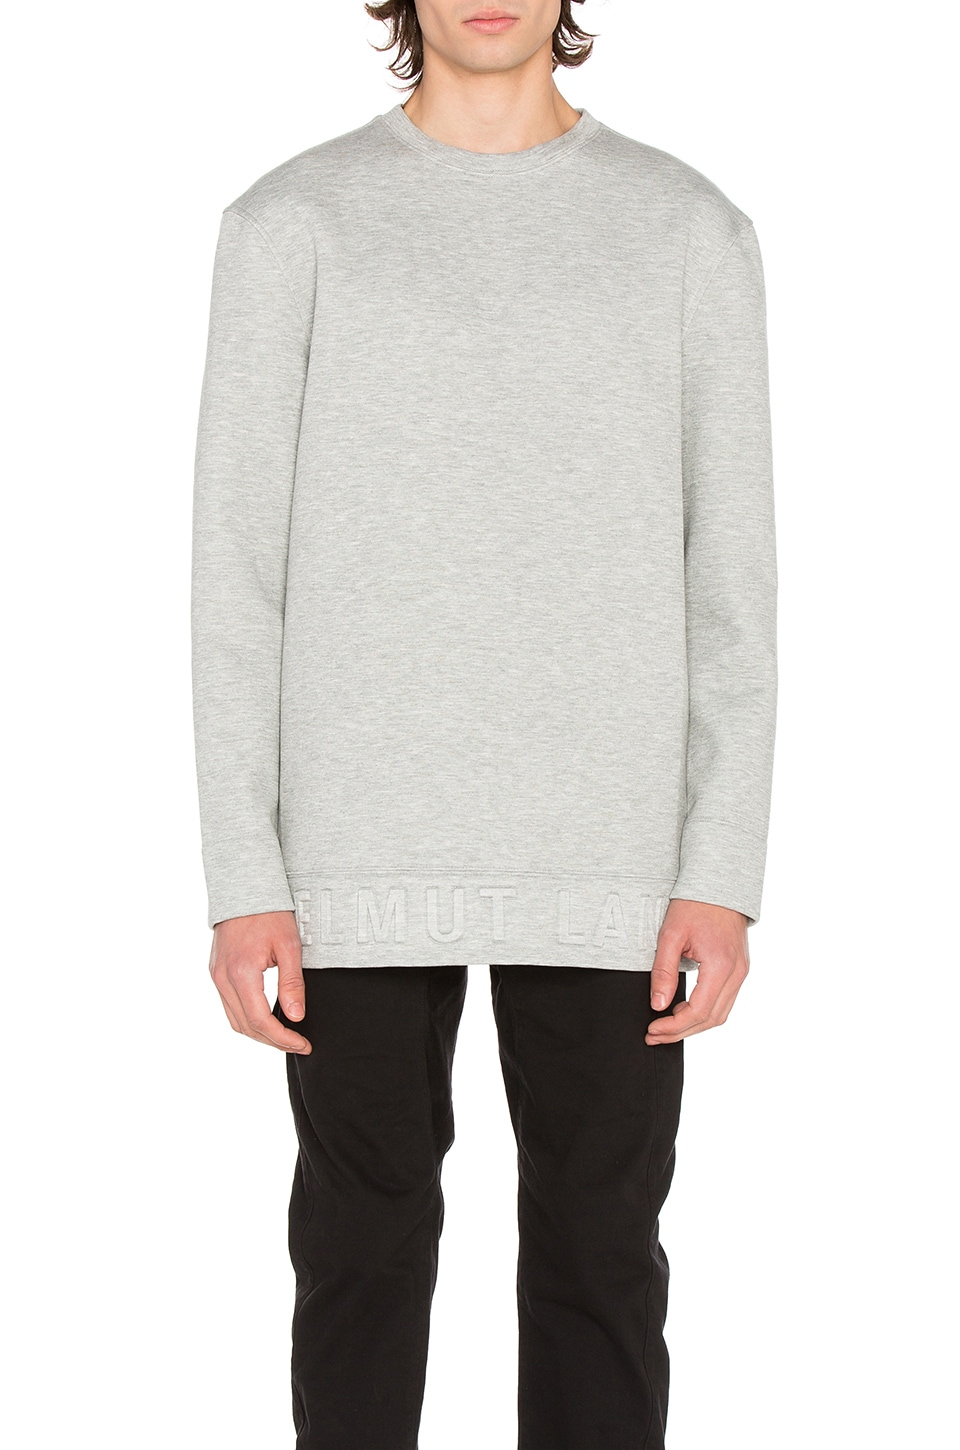 Box Fit 3D L/S Pullover by Helmut Lang